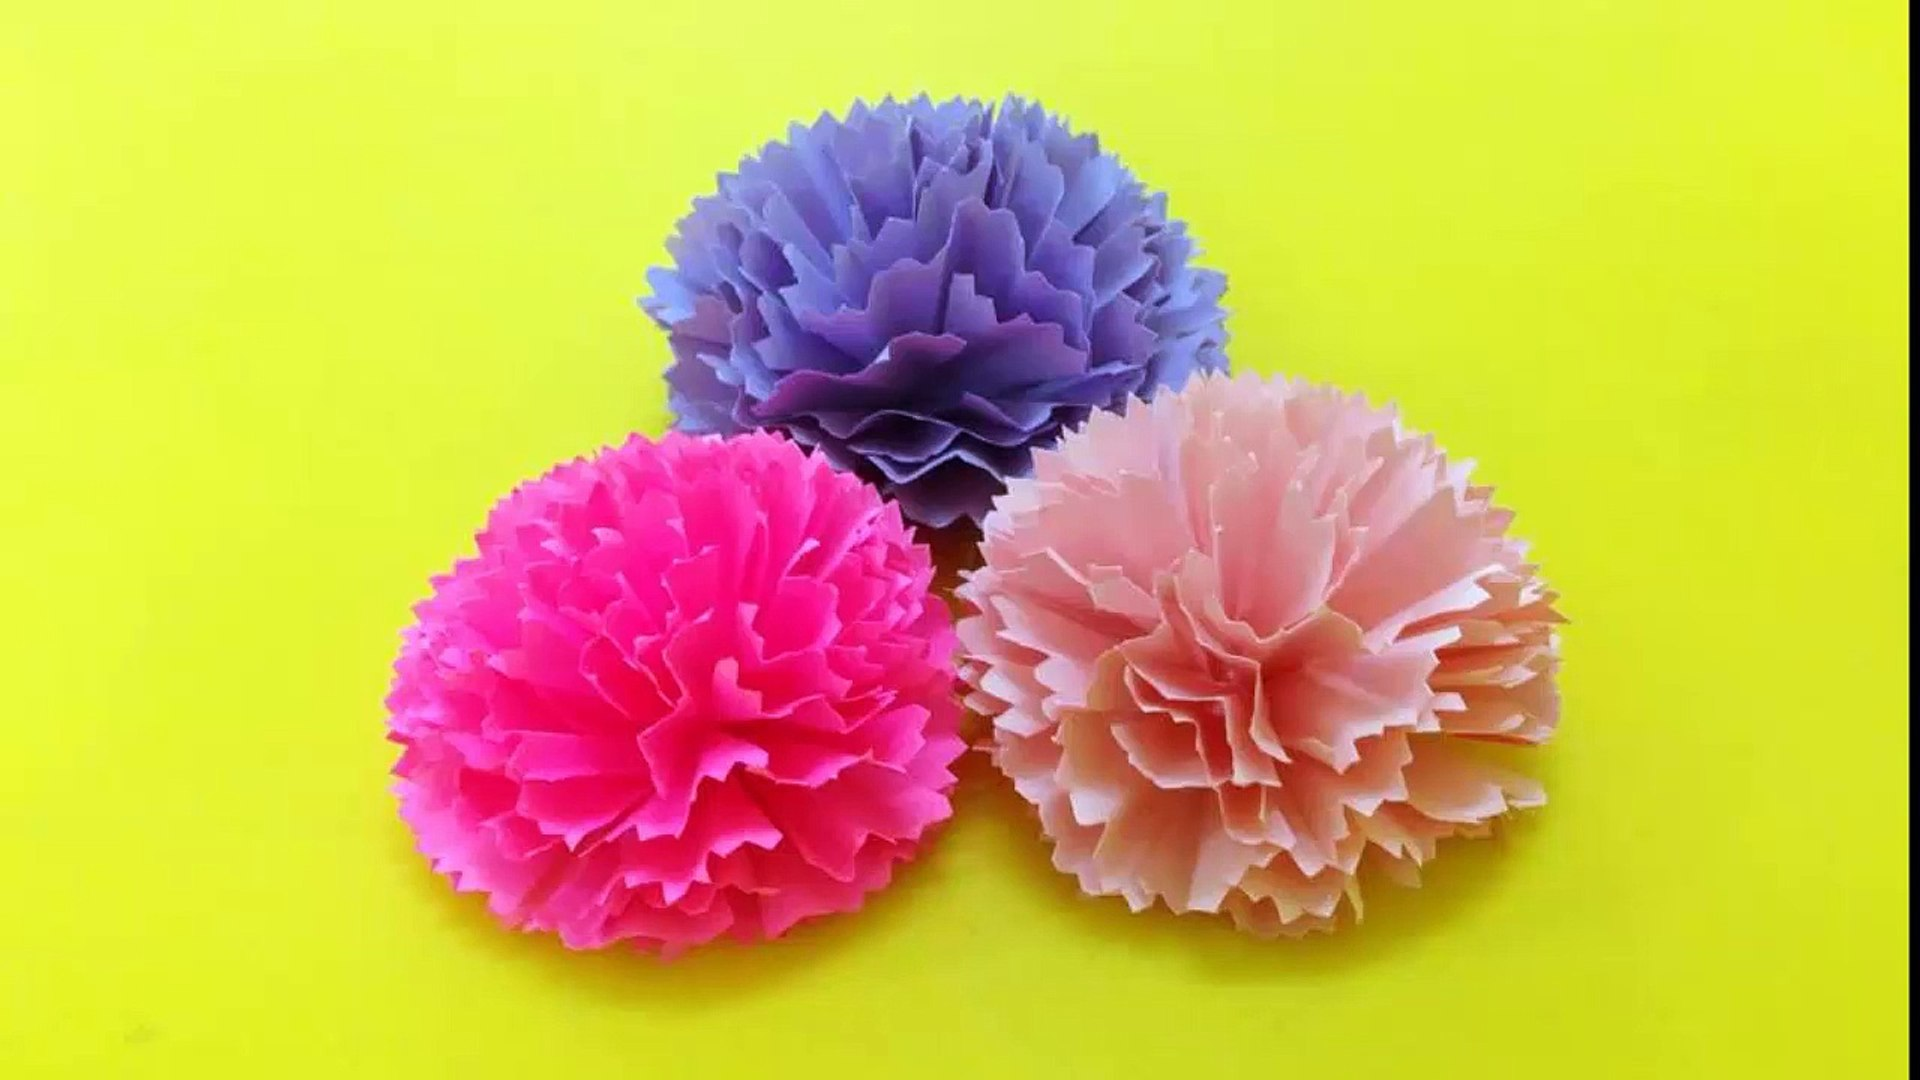 How To Make Carnation Paper Flower Easy Origami Flowers For Beginners Making Diy Paper Crafts